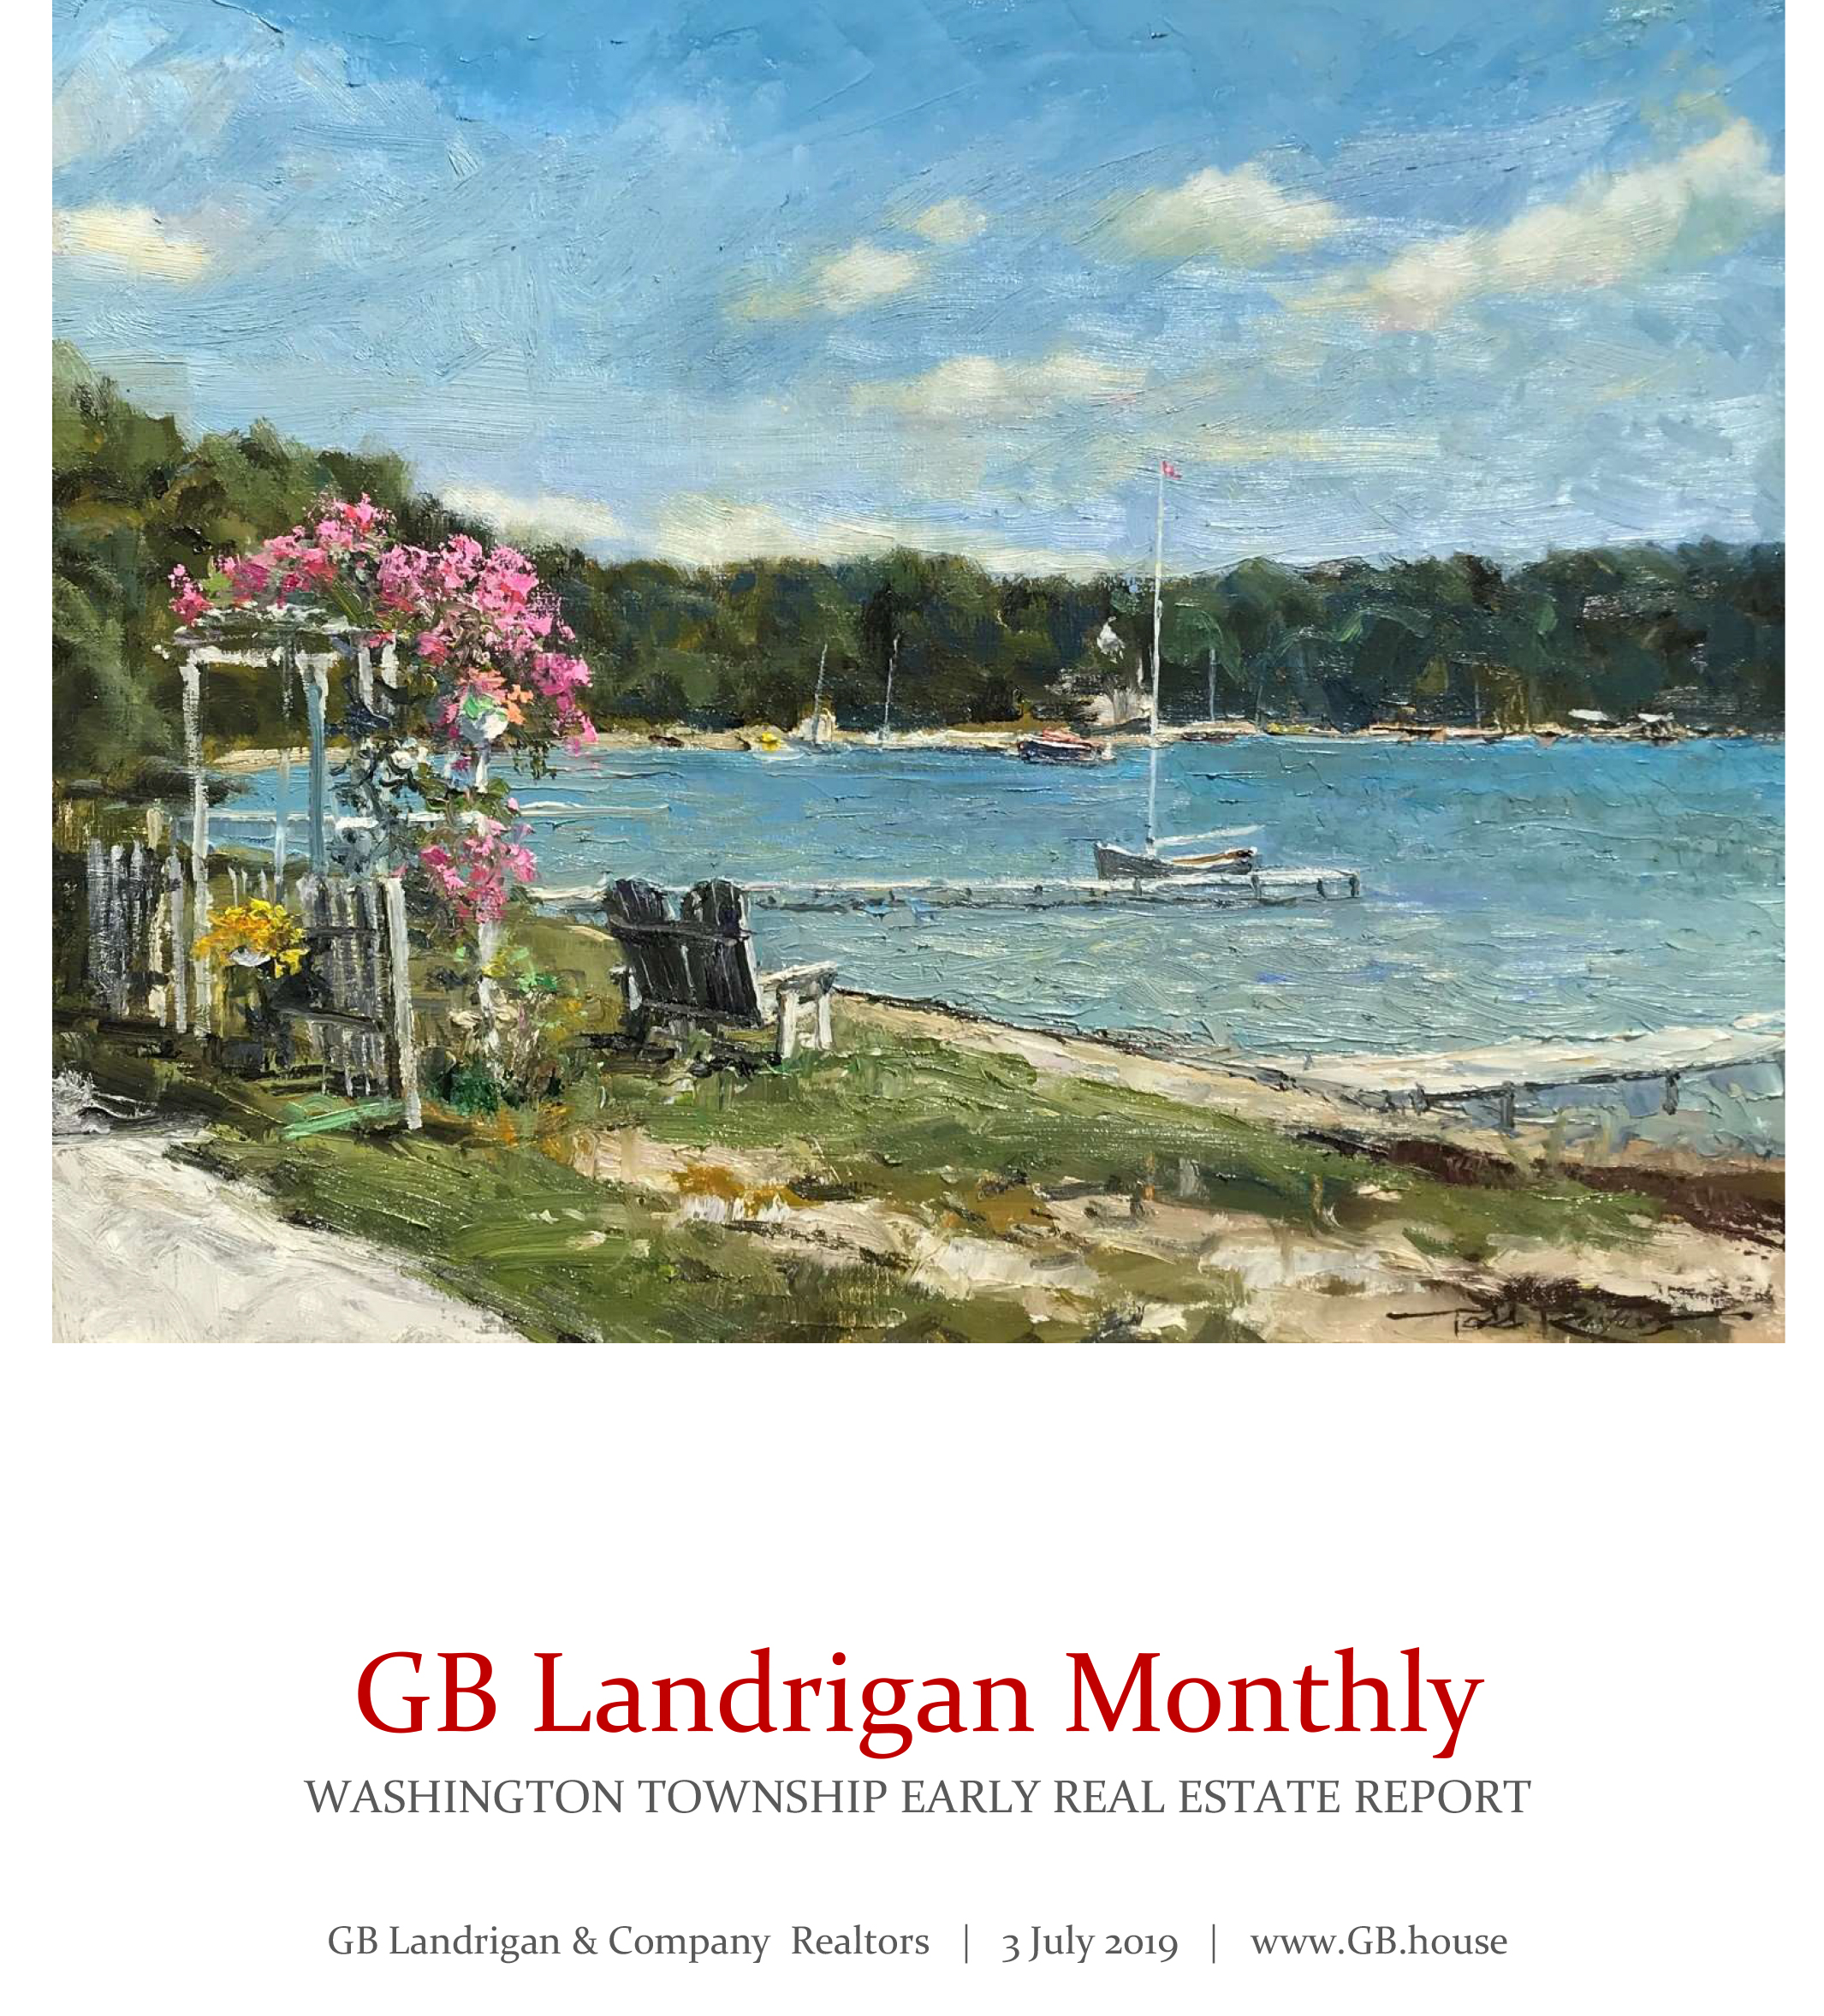 Landrigan Monthly July 2019 cover.jpg